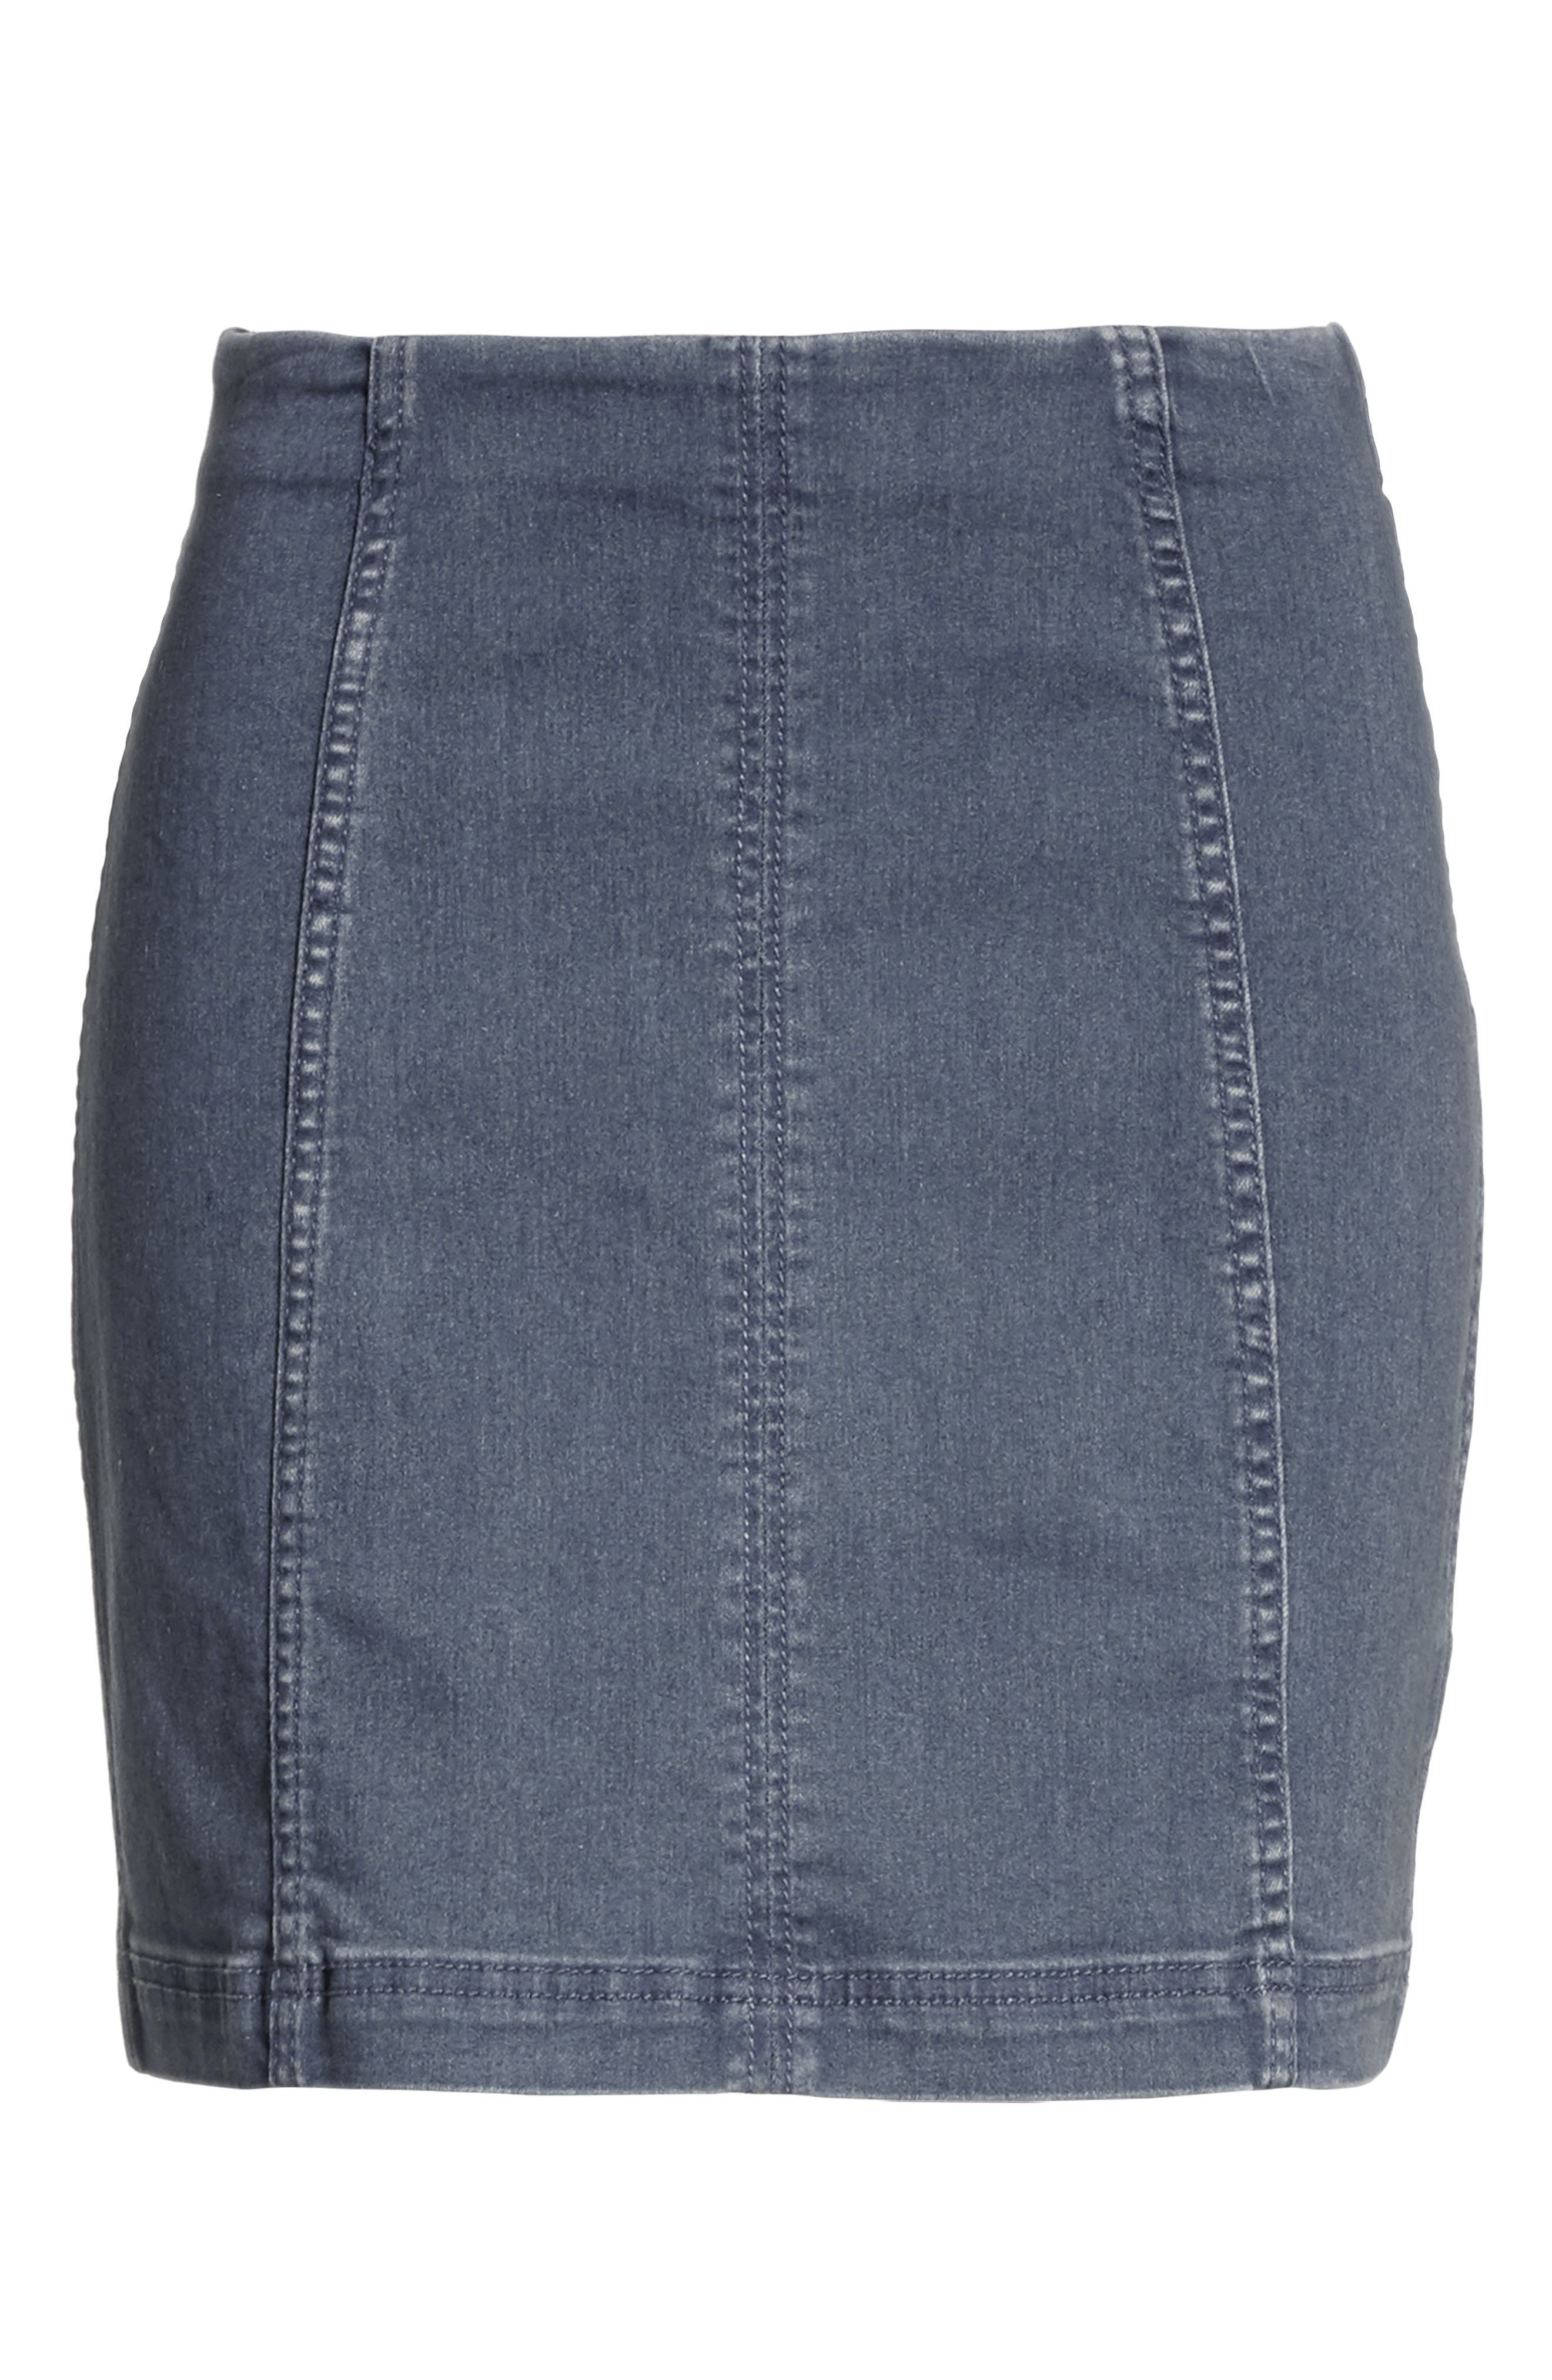 FREE PEOPLE, We the Free by Free People Modern Denim Miniskirt, Alternate thumbnail 7, color, 400